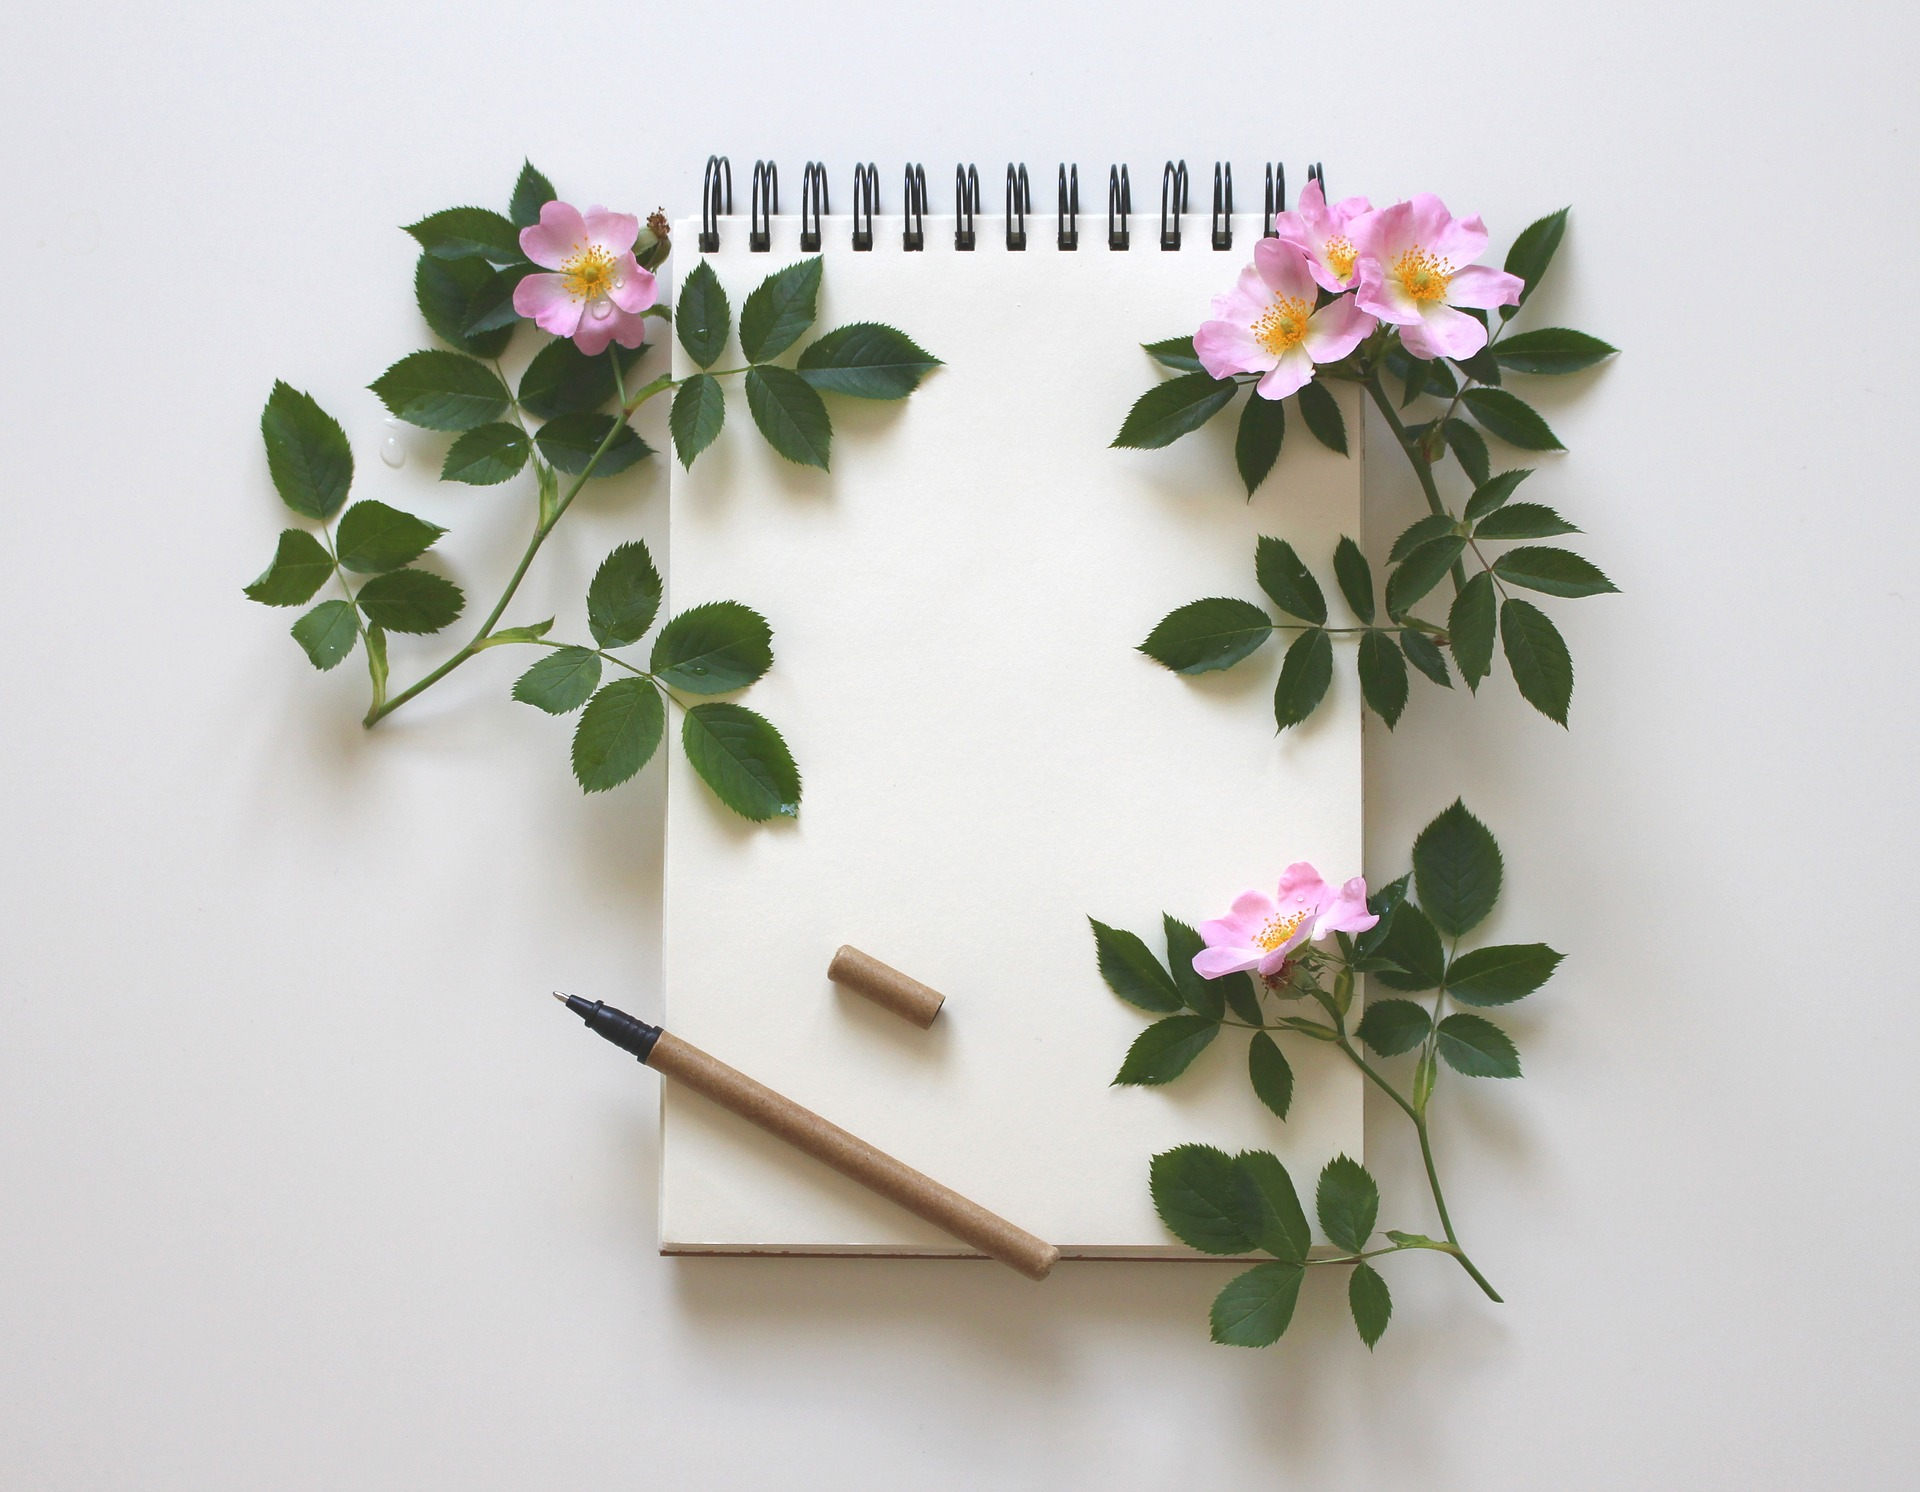 blank journal with flowers